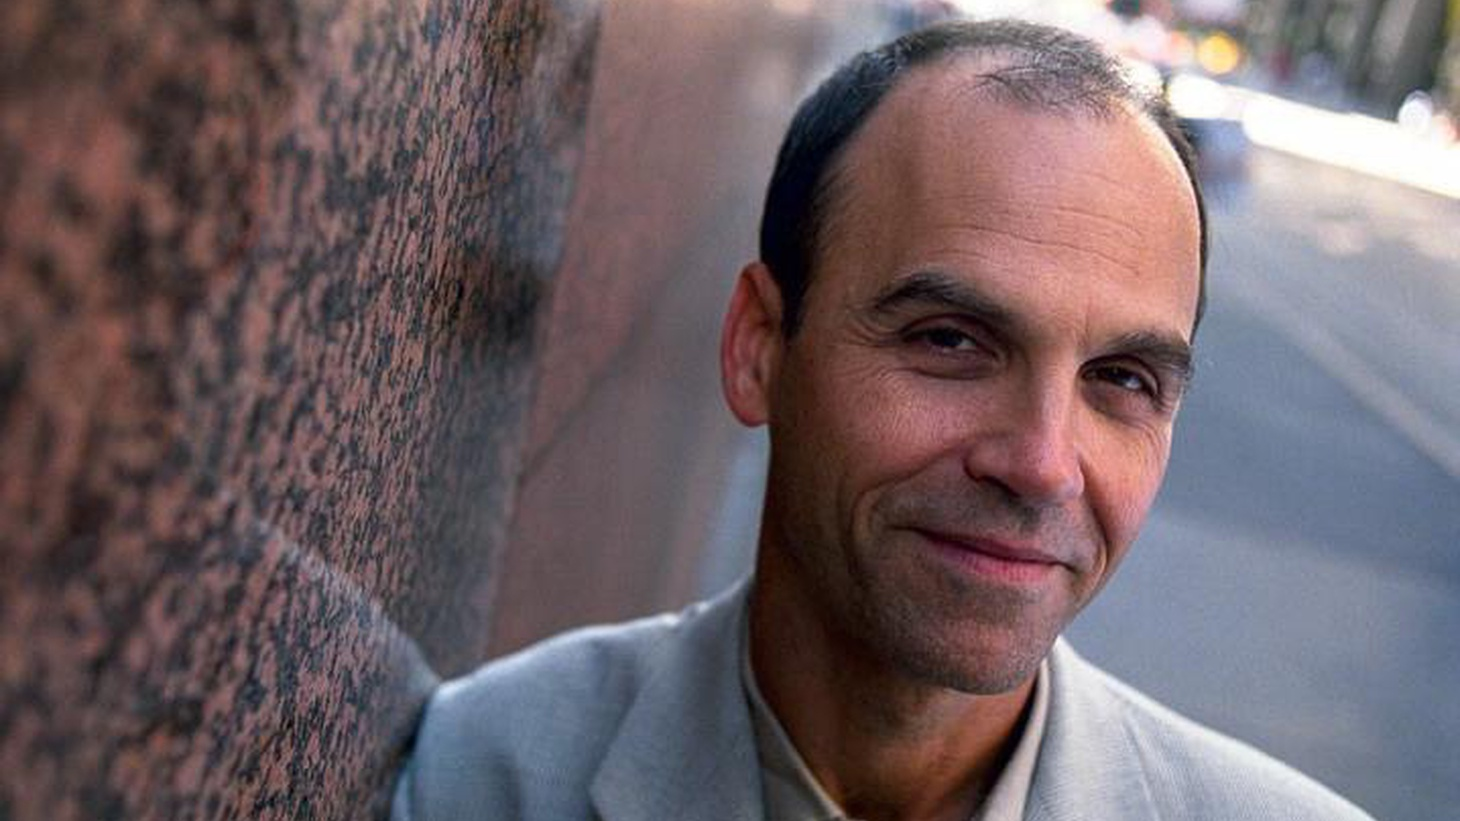 Scott Turow is a bestselling author who has had several of his books turned into feature films. His Guest DJ set is full of thoughtful and sentimental reflections on fatherhood, civil rights, and The Beatles most controversial song. He also tells us about his band, the Rock Bottom Remainders, which is a group of bestselling authors who play shows to raise money for charity.